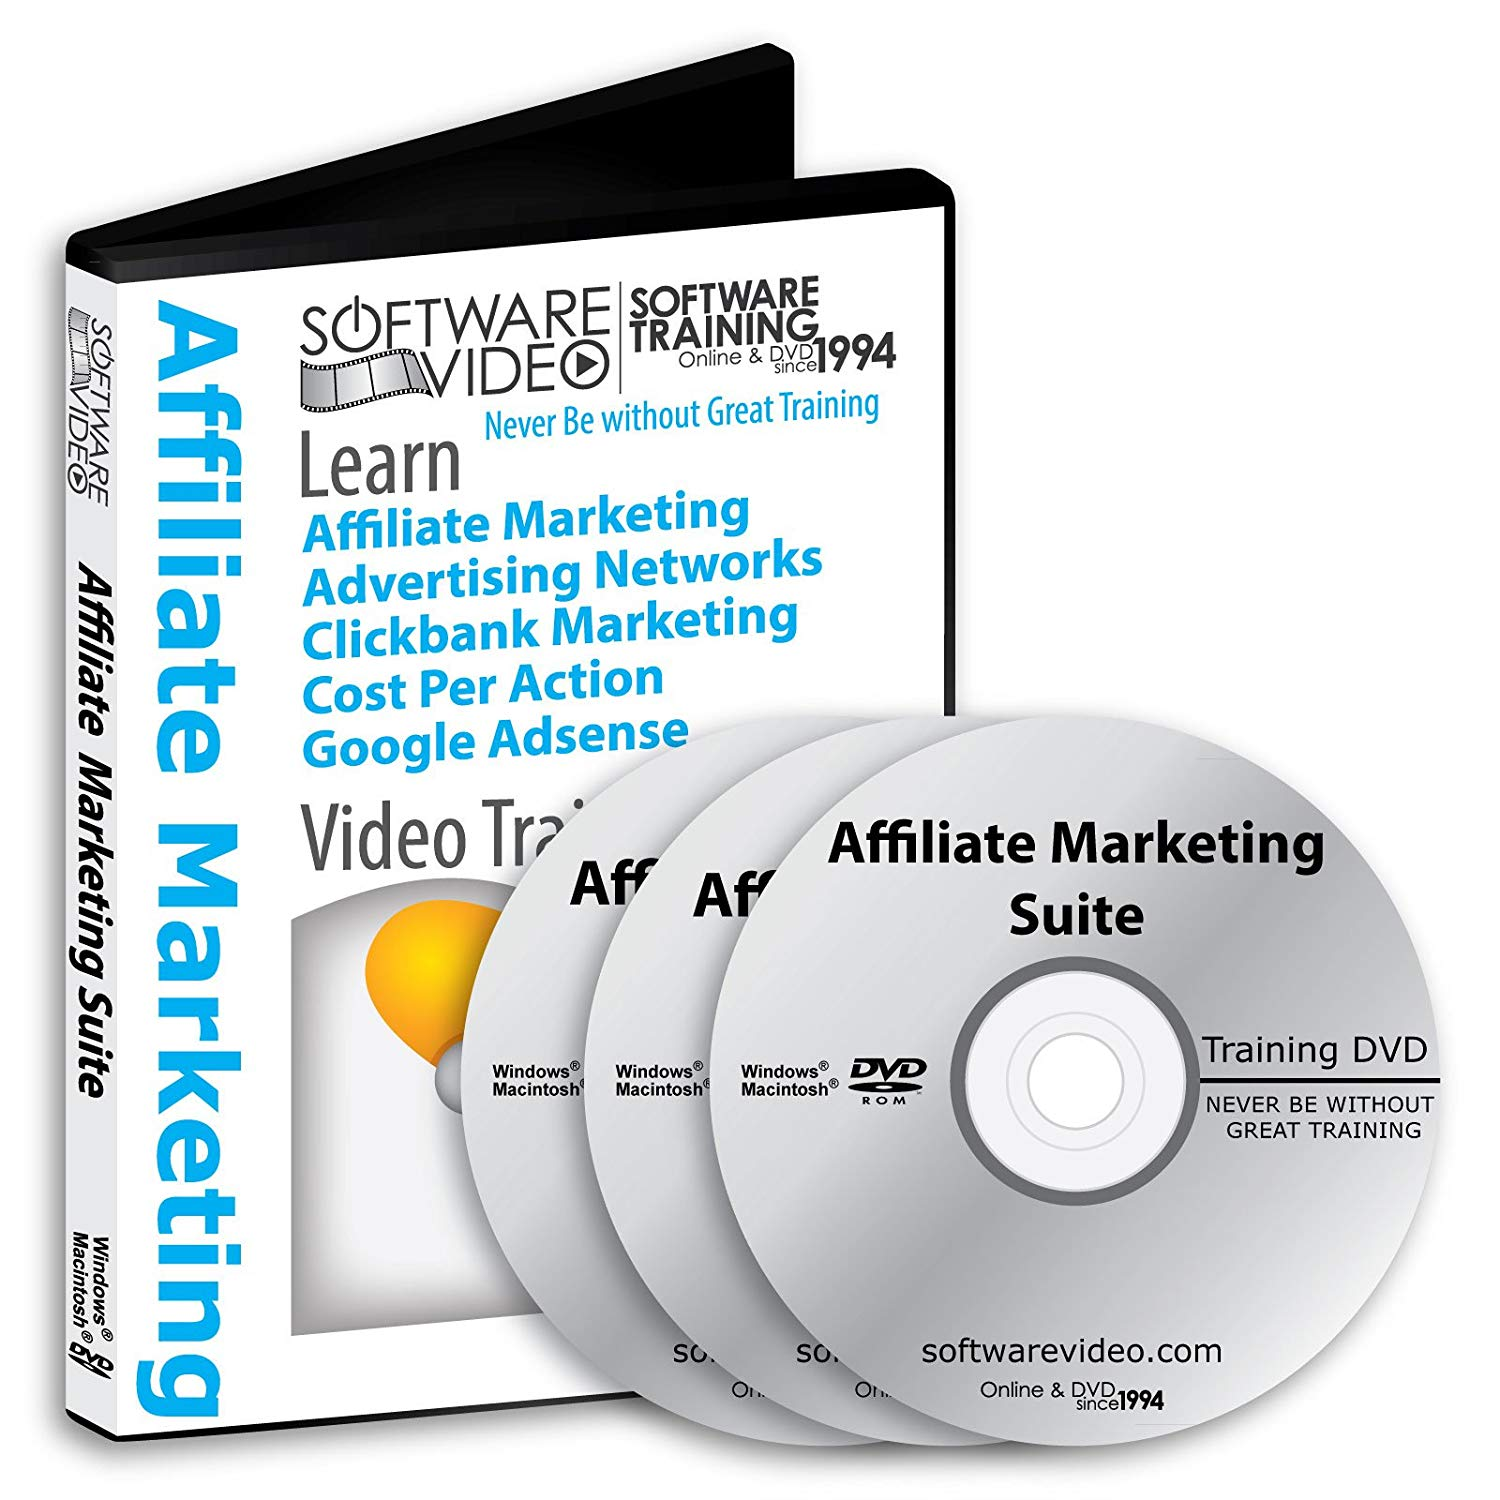 Software Video Learn AFFILIATE MARKETING Training DVD Sale 60 Off training video Over 6 Hours o